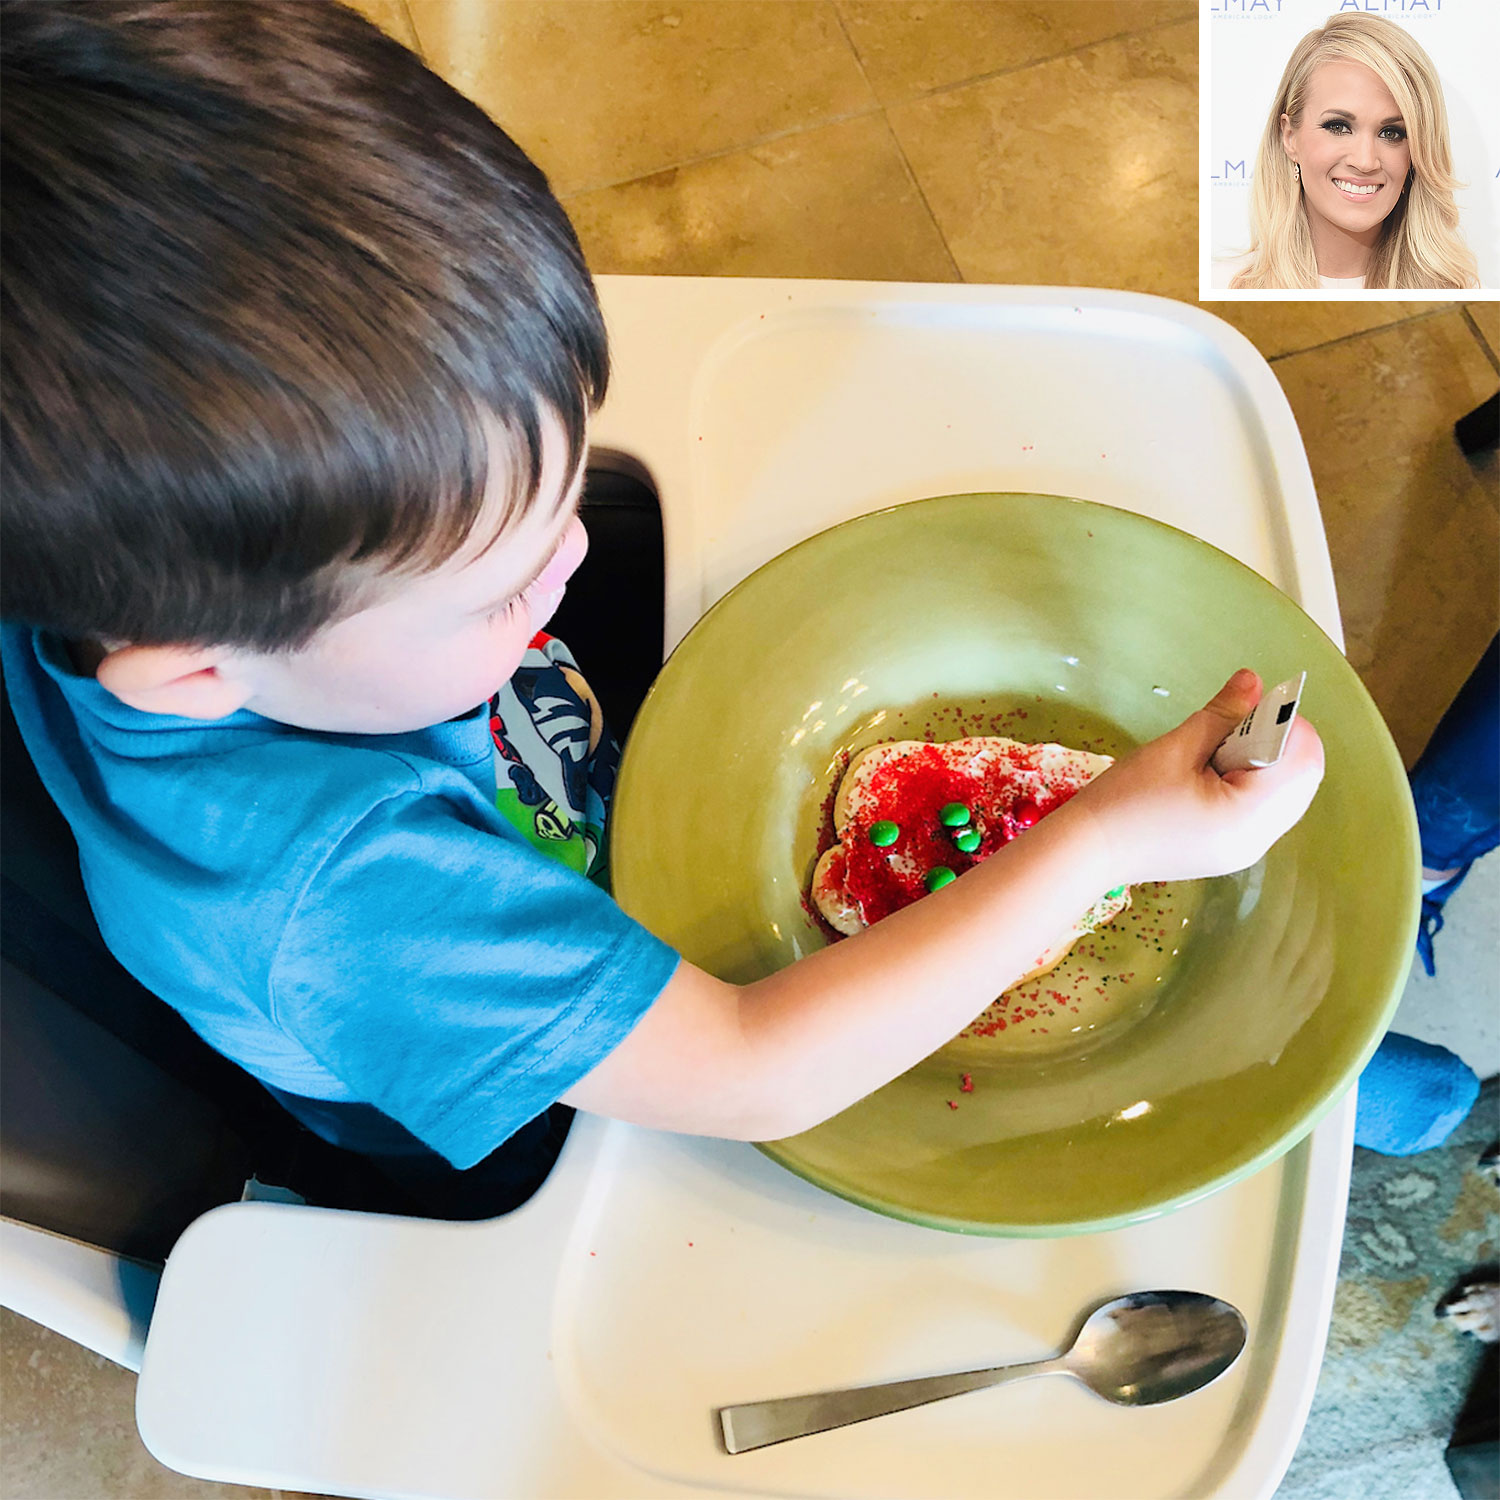 Baking Buddies! Carrie Underwood Makes Christmas Cookies (for the First Time!) with Son Isaiah